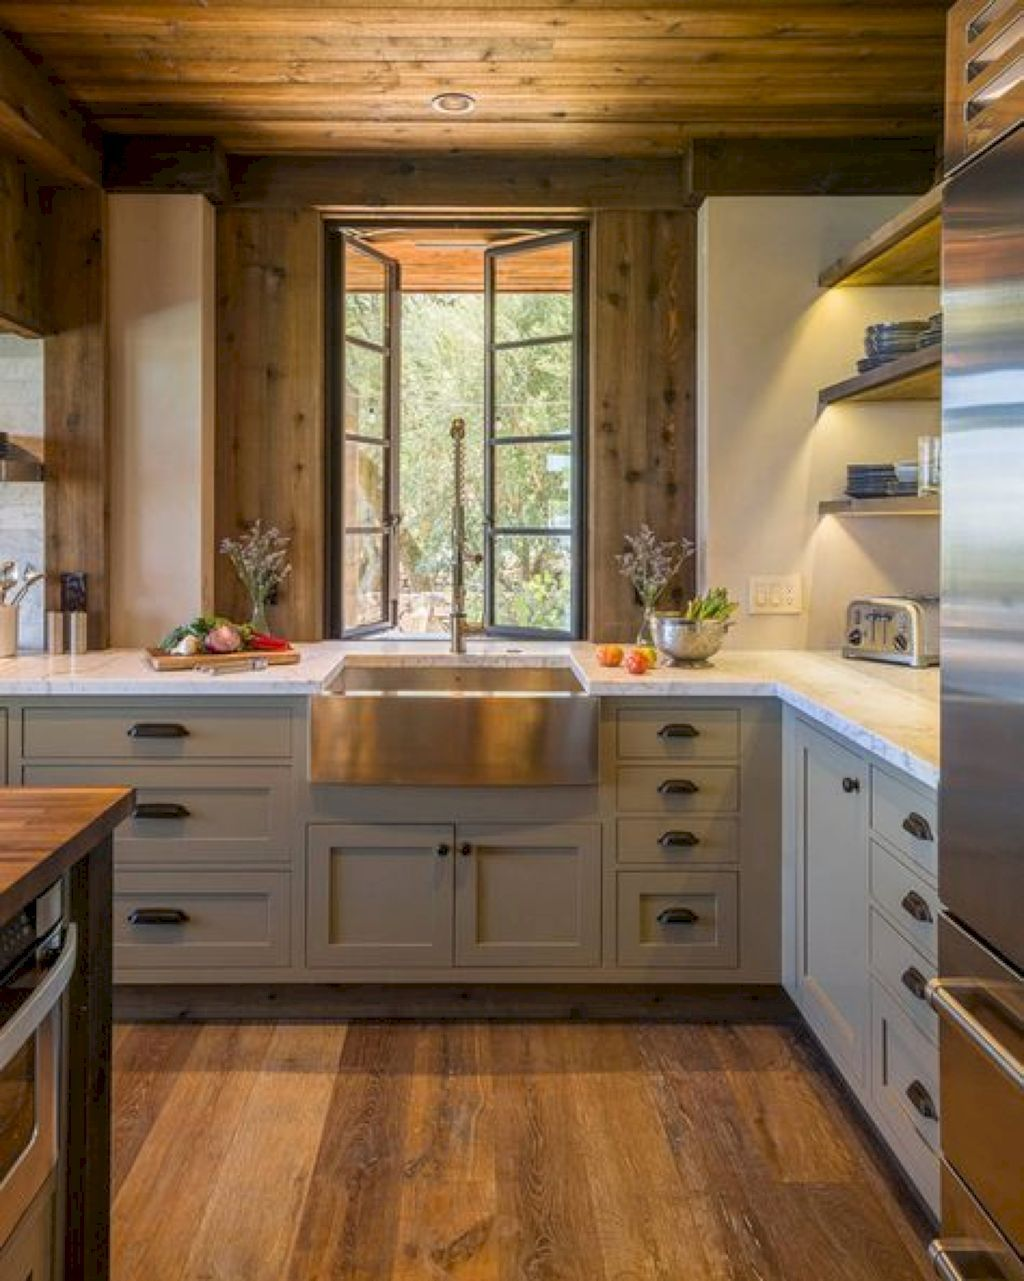 20 best rustic farmhouse kitchen cabinets ideas farmhouse style kitchen cabinets farmhouse on farmhouse kitchen cabinets id=74682